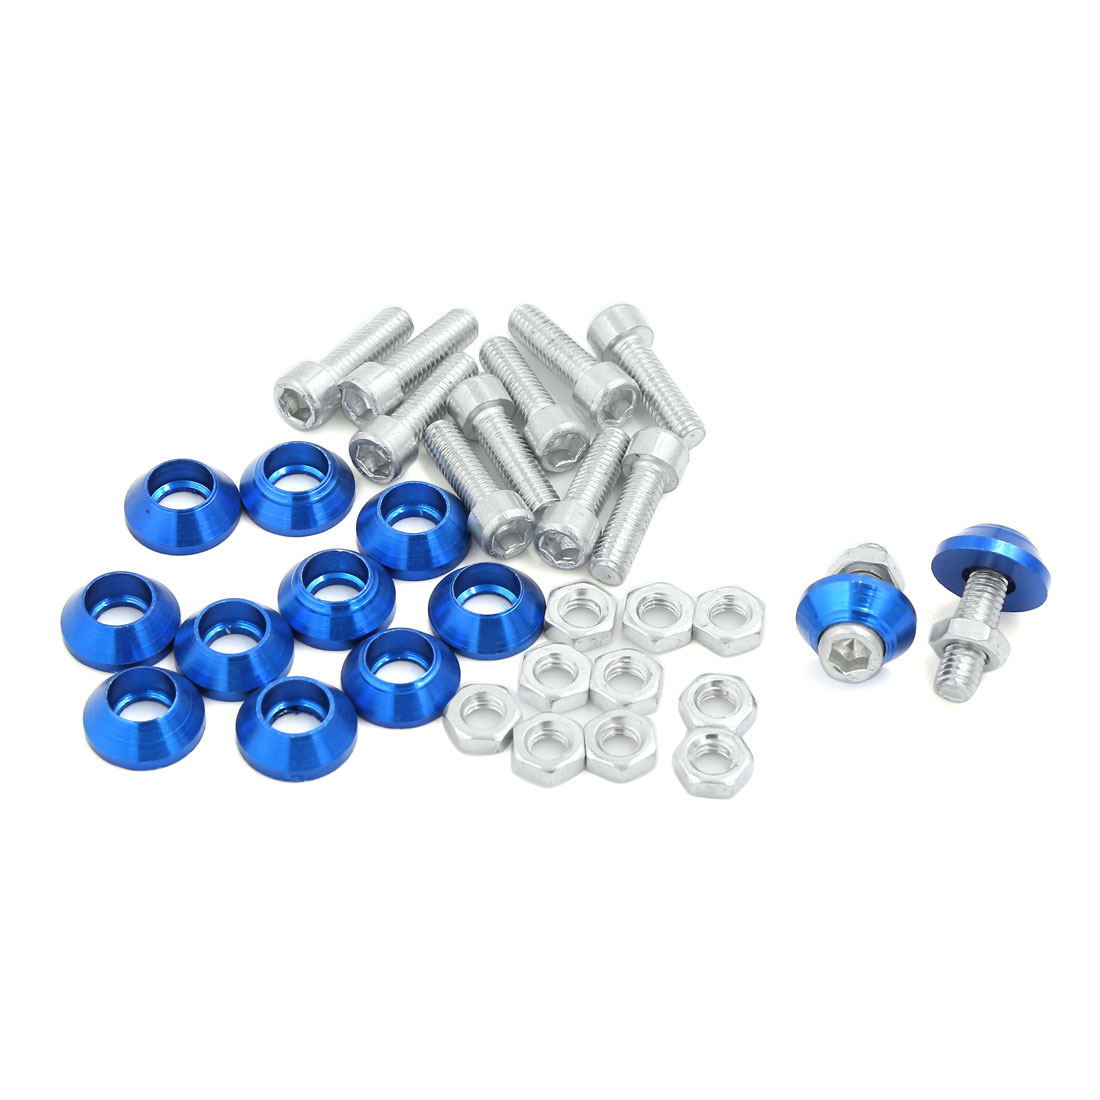 12 Pcs Blue Cone Shape Cap Car Motorcycle License Plate Screw Decor 6mm Thread